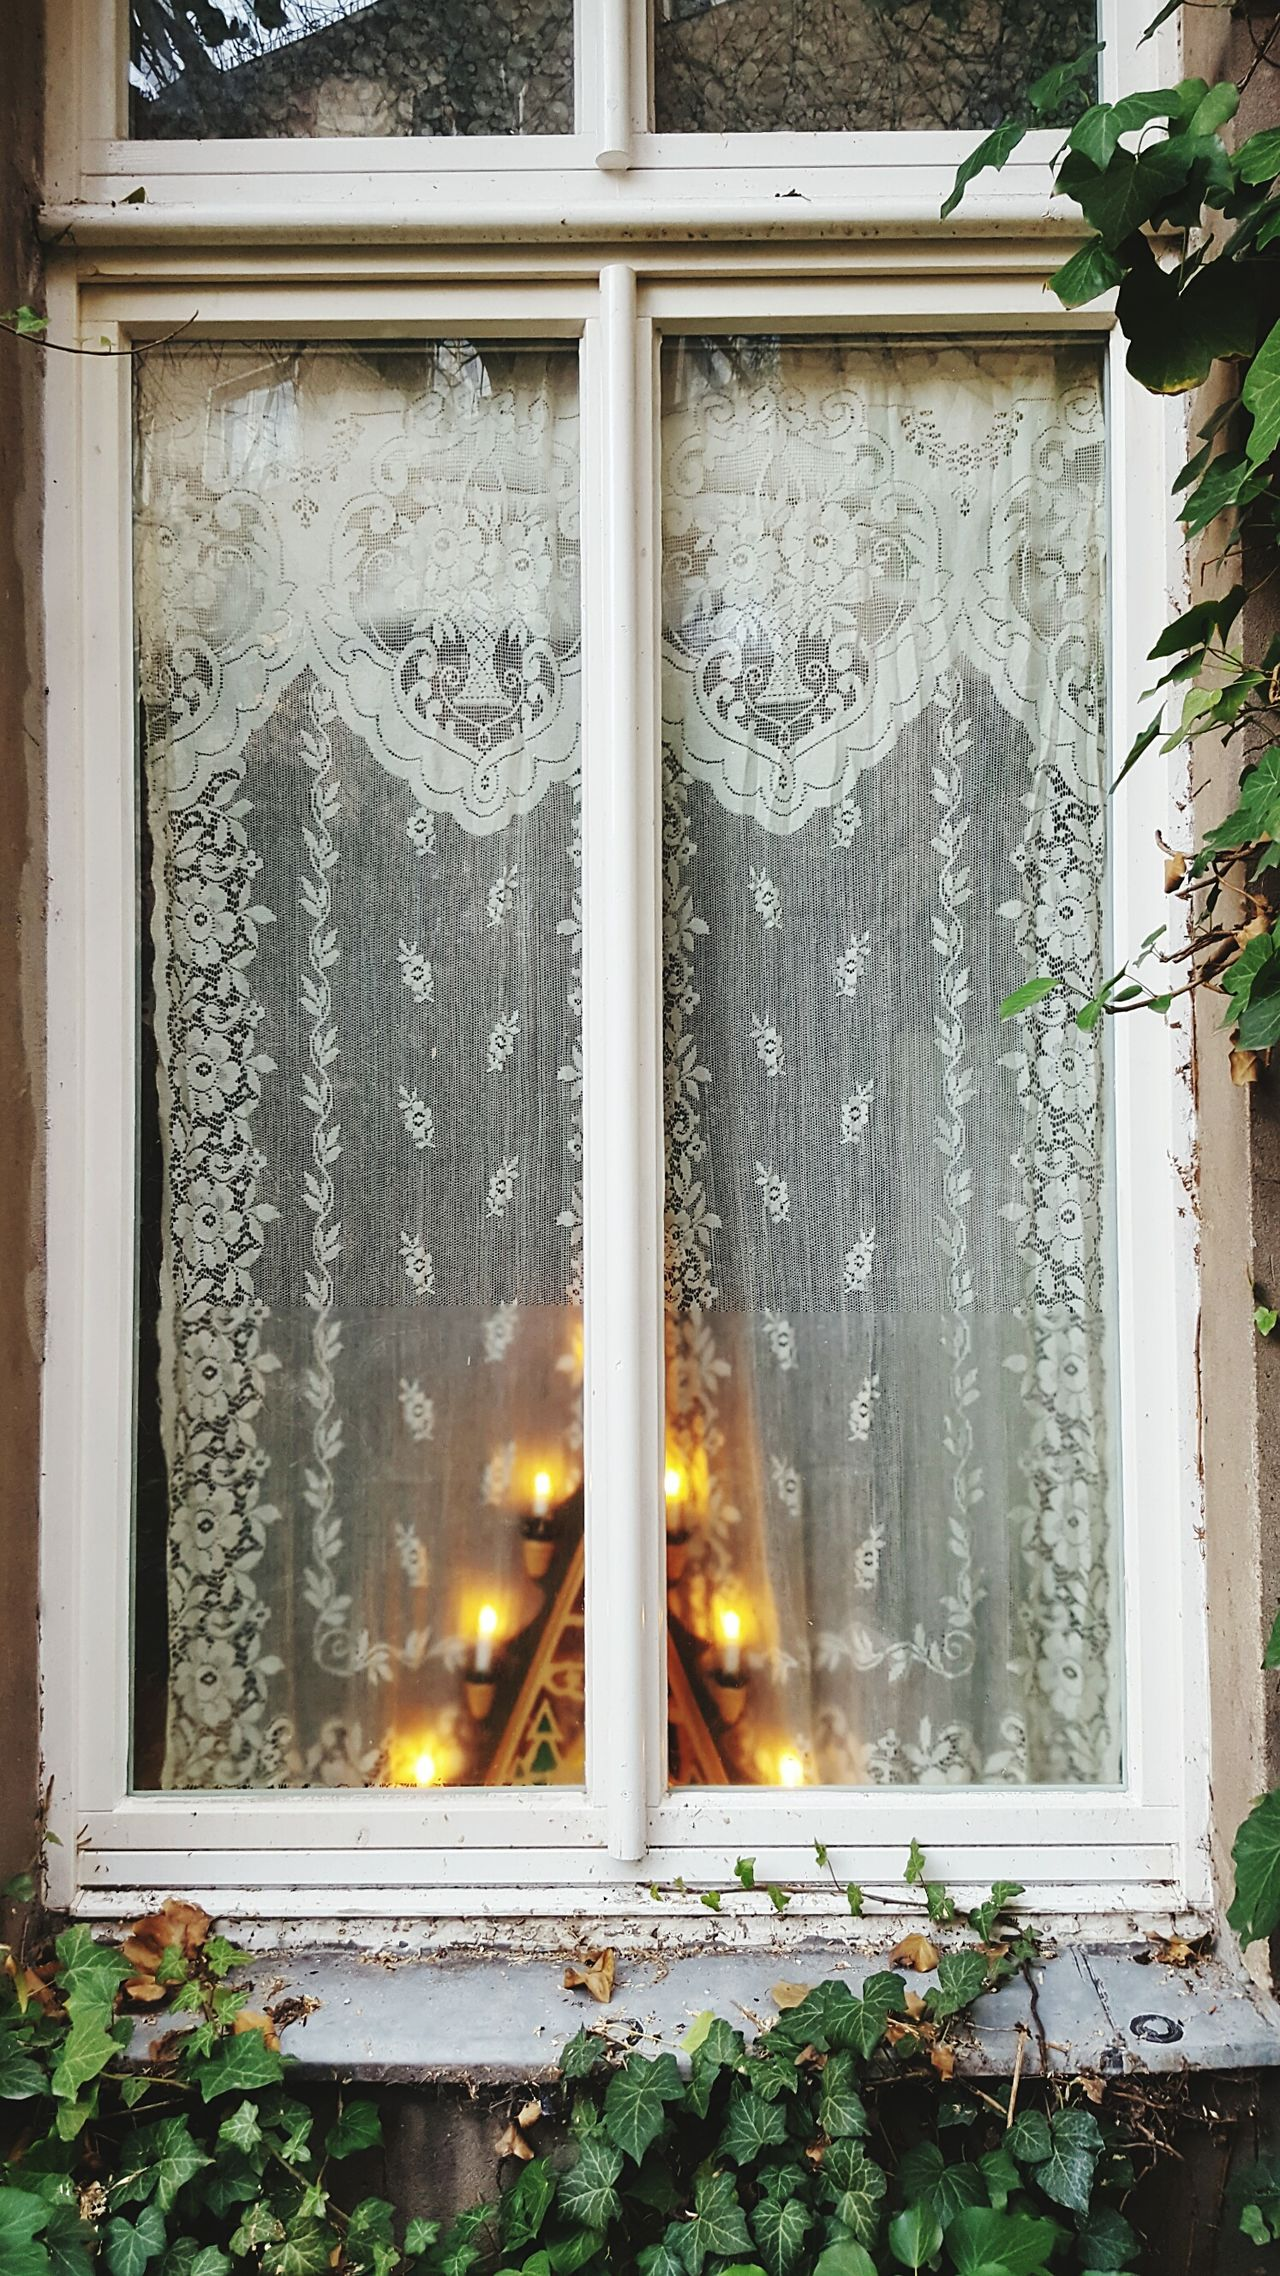 Window No People Outdoors Christmas Time Curtain Light Candles